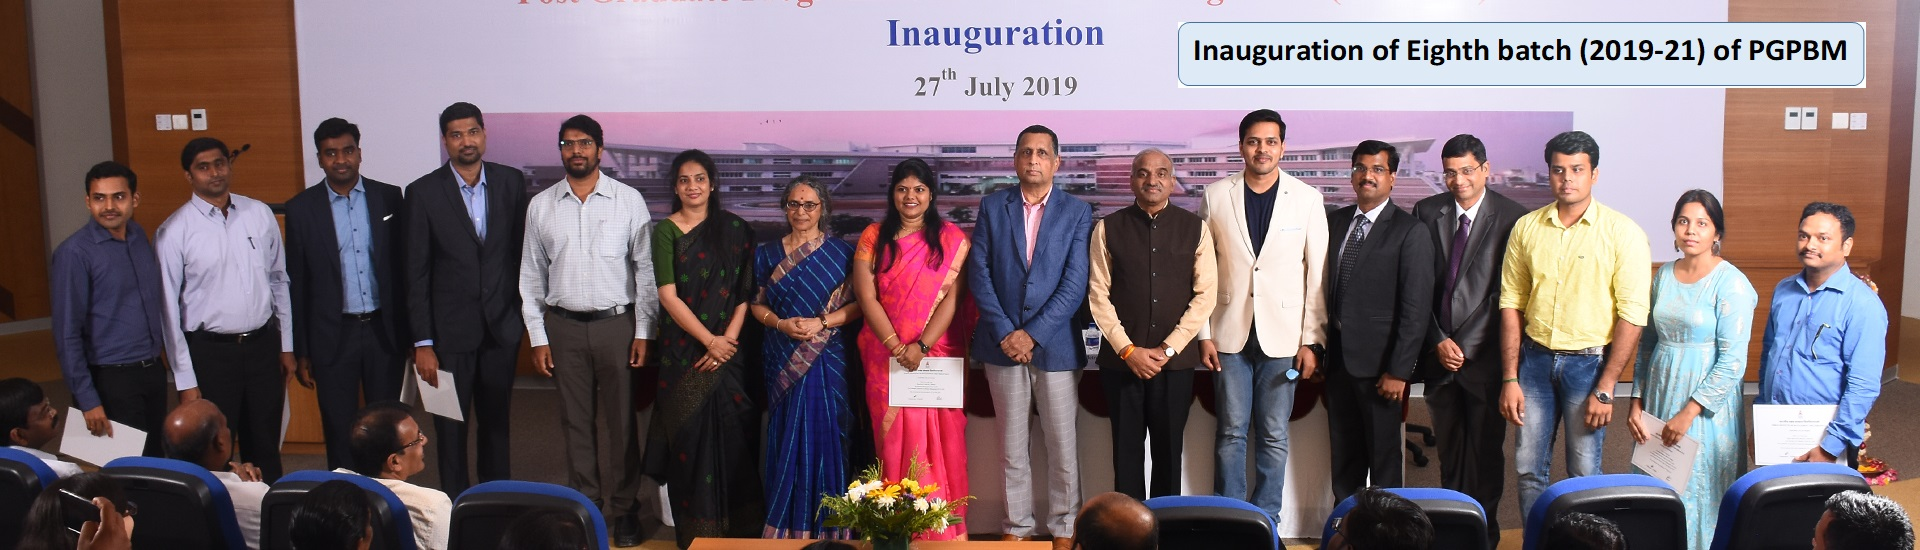 Inauguration of Eighth batch (2019-21) of PGPBM